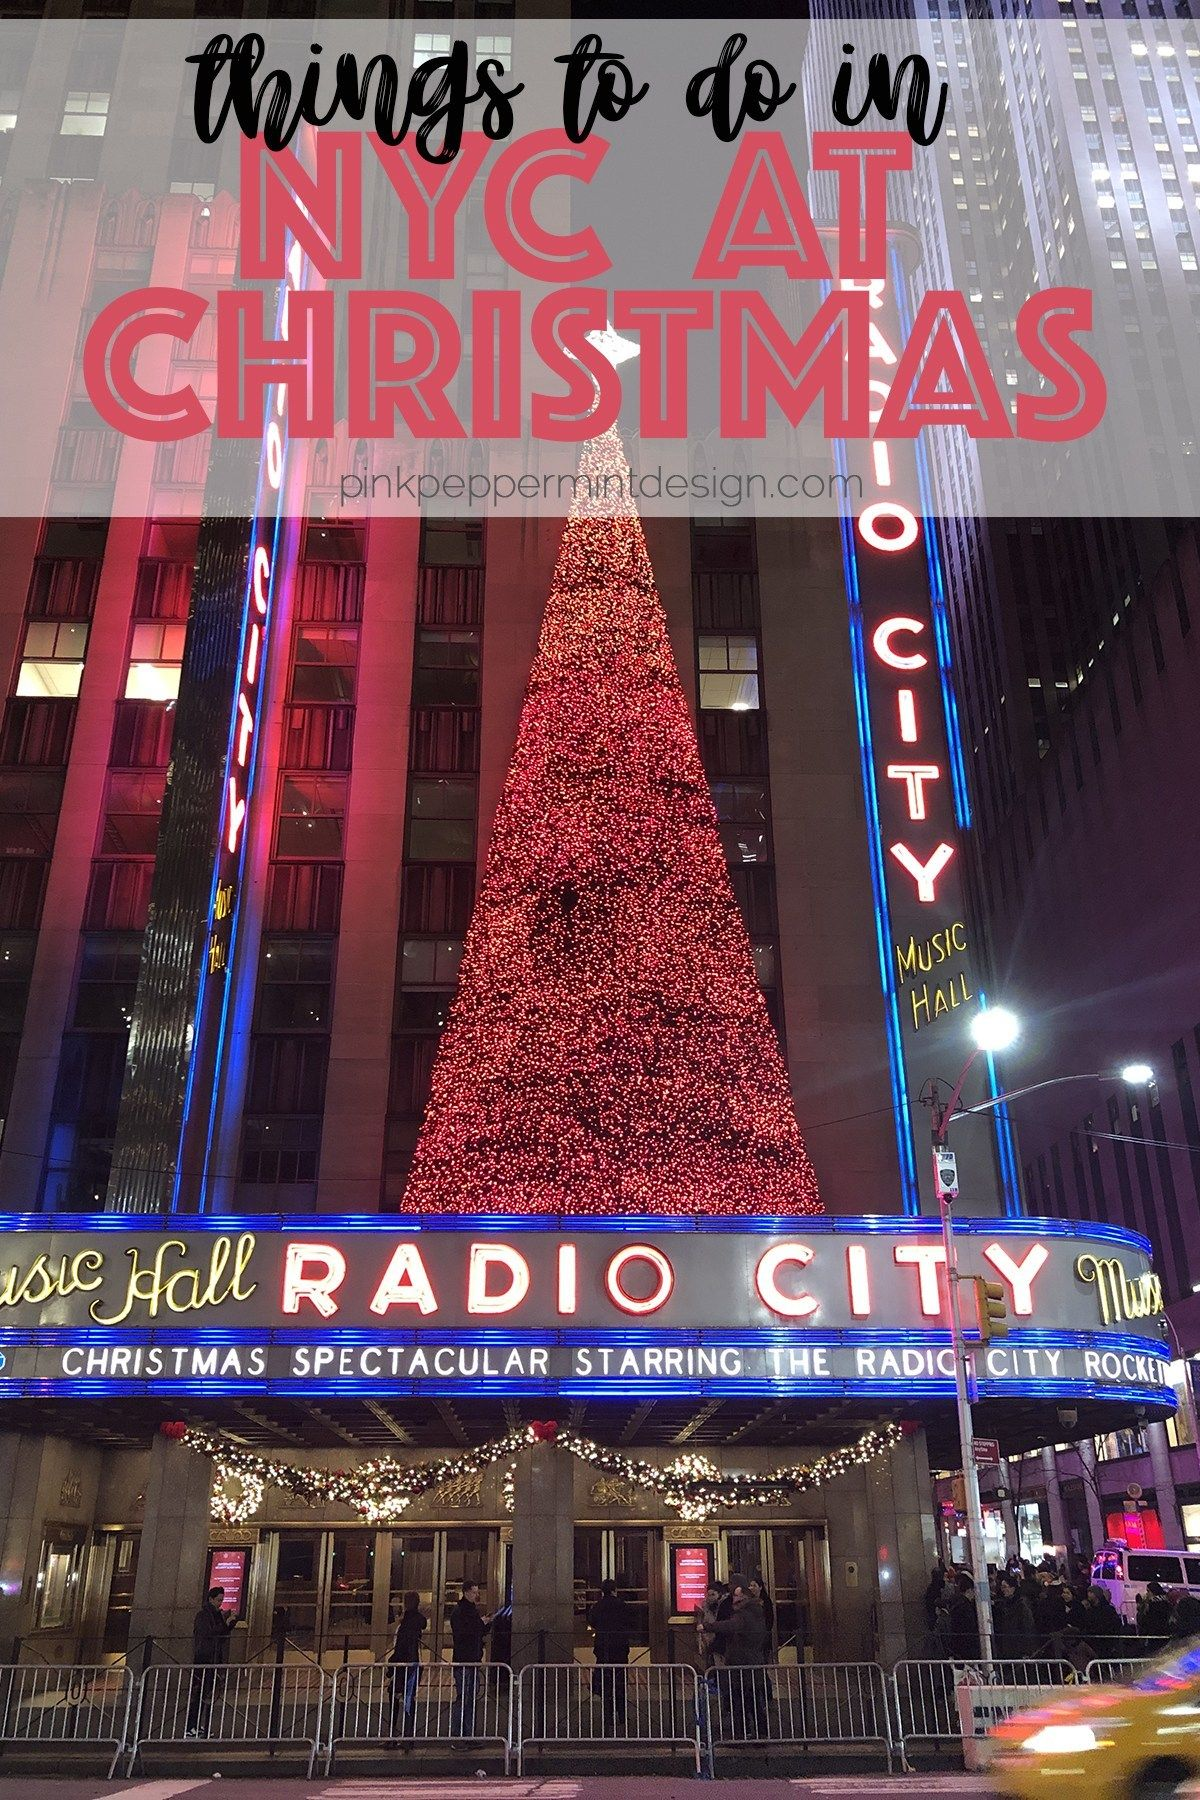 Christmas in New York City is truly magical!  Find out everything you need to know from where to stay with a family, Macy's Santaland reservations, the Rockettes Christmas spectacular, what to see and do in New York City at Christmas.  #NewYorkCity #NYC #Christmas #Travel #PinkPeppermintDesign #ChristmasinNYC